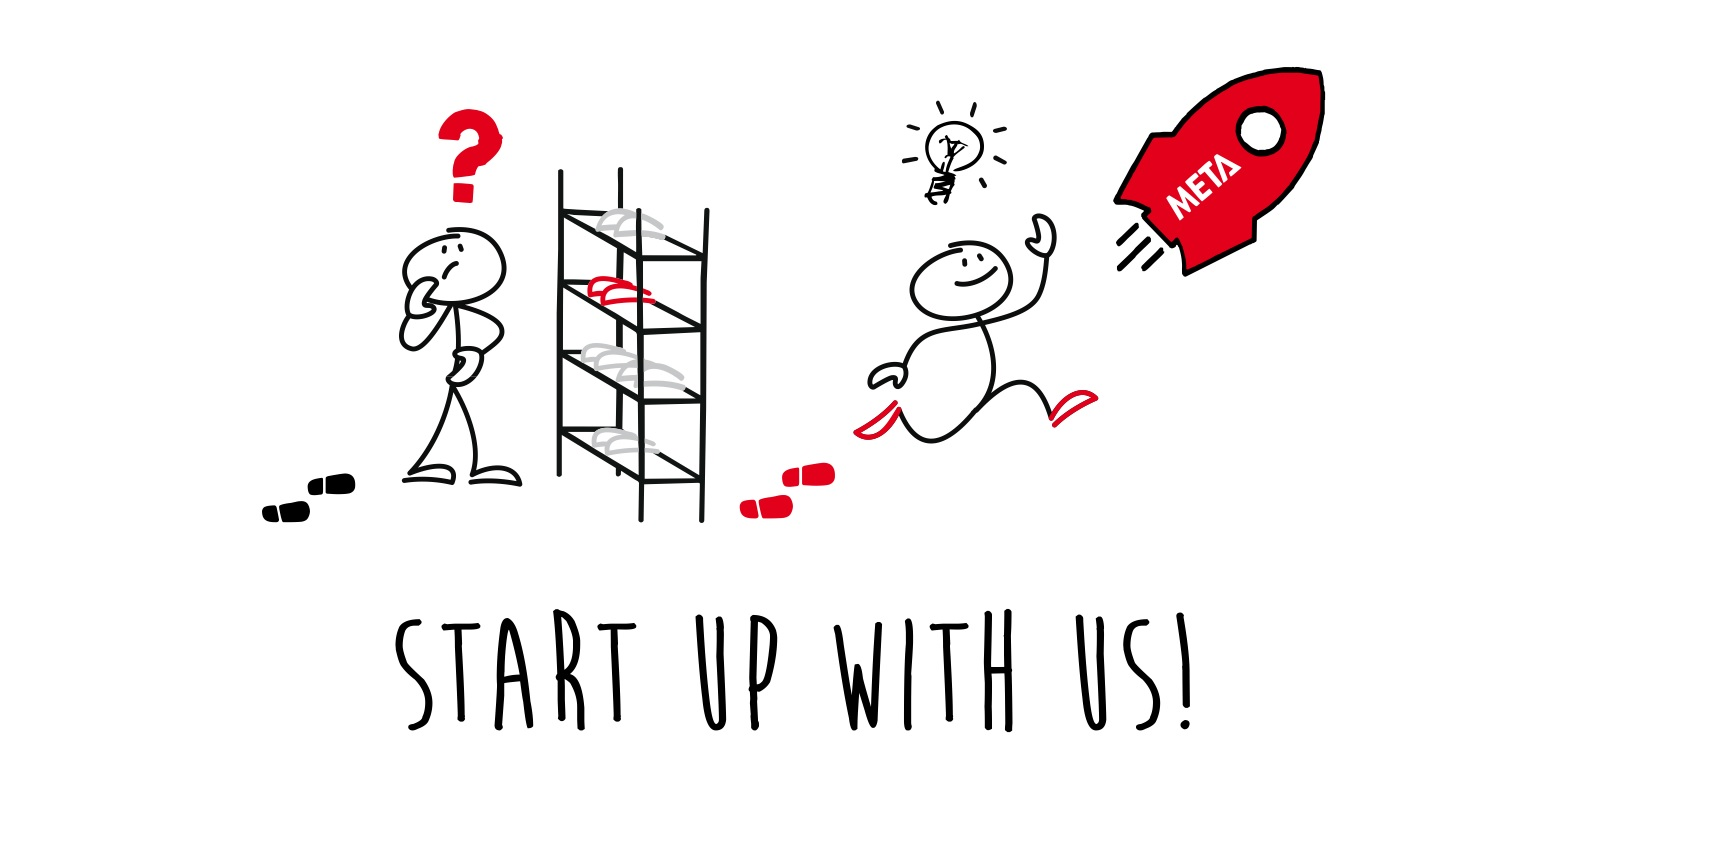 Start up with us